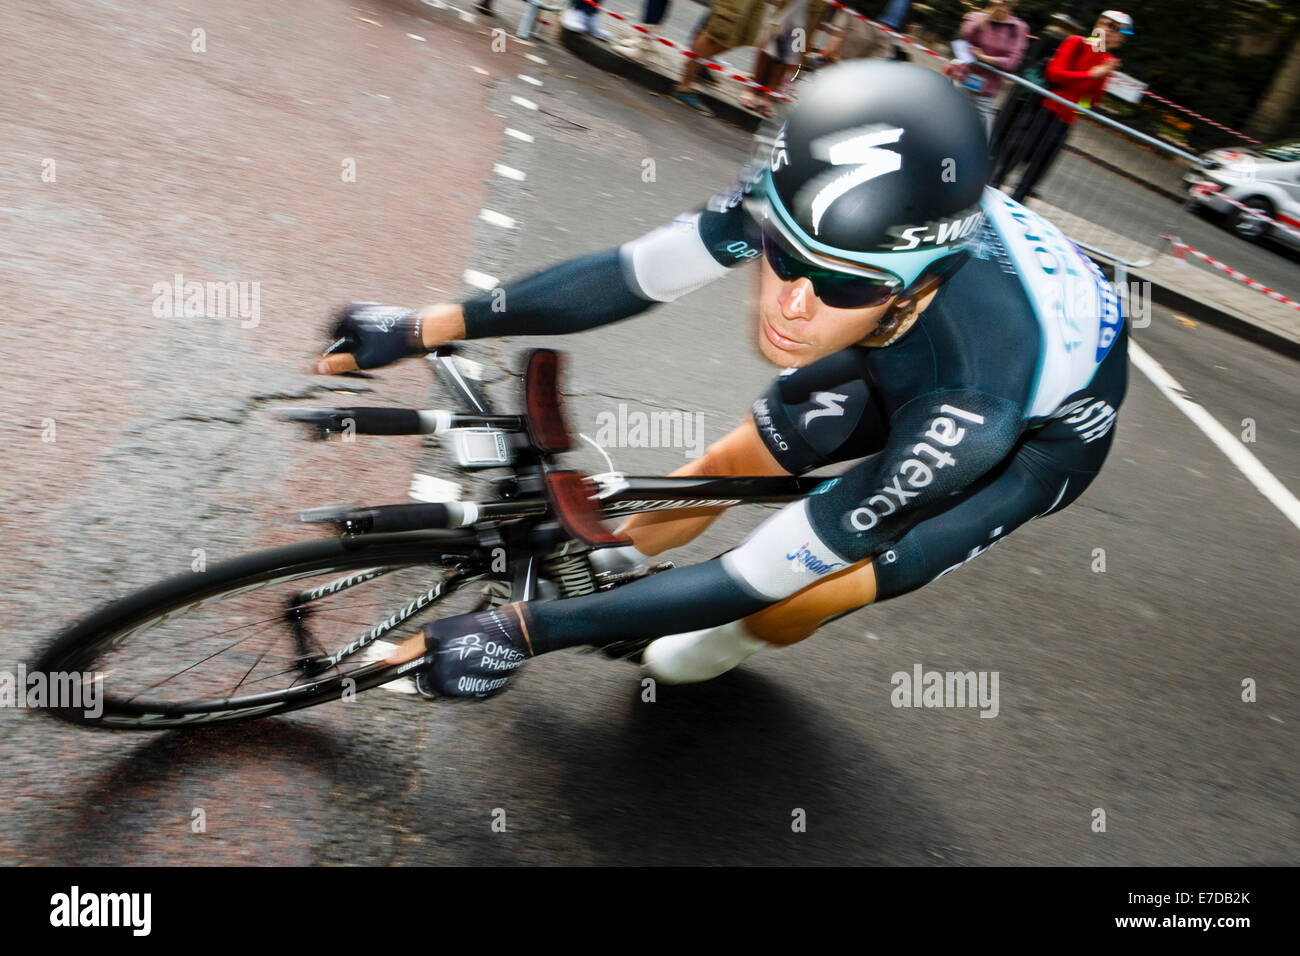 London, UK. 14th September 2014. Belgian rider JULIEN VERMOTE  of team Omega Pharma Quickstep competes in the individual - Stock Image